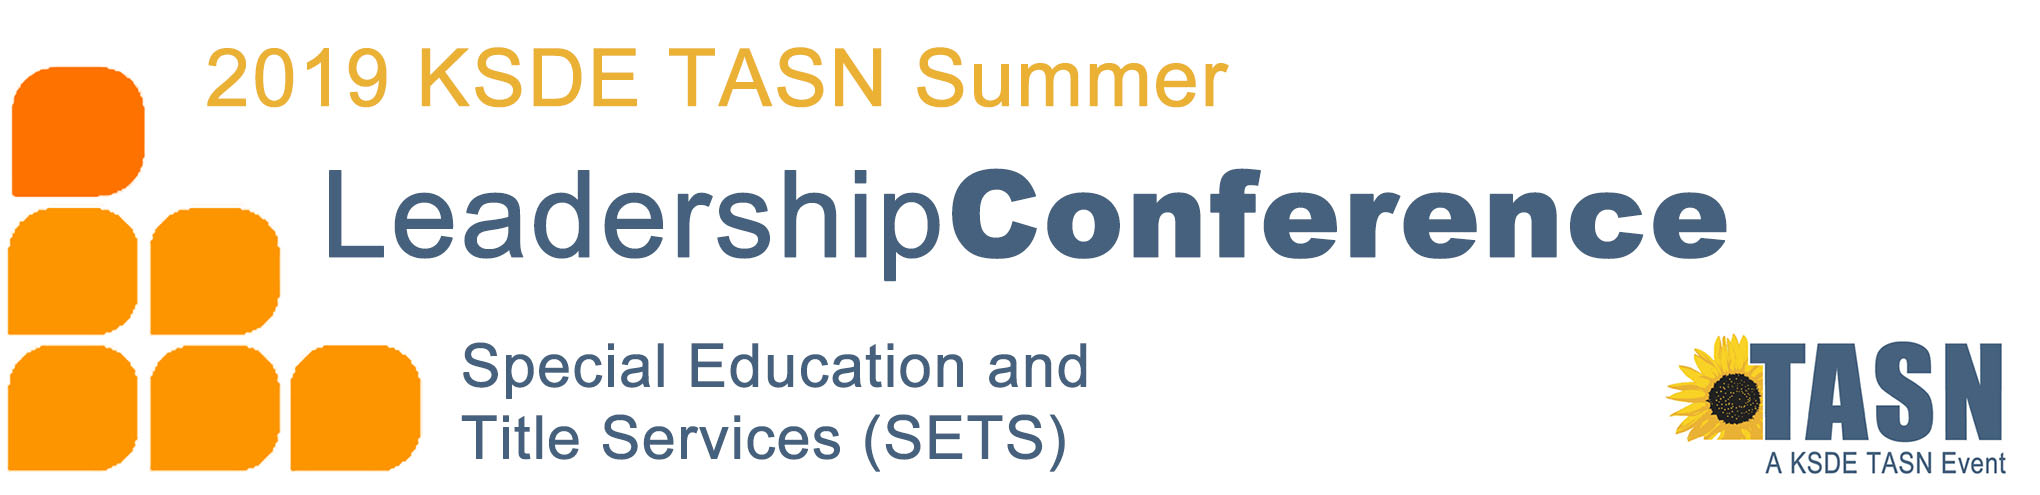 2019 Summer KSDE TASN Leadership Conference for Administrators